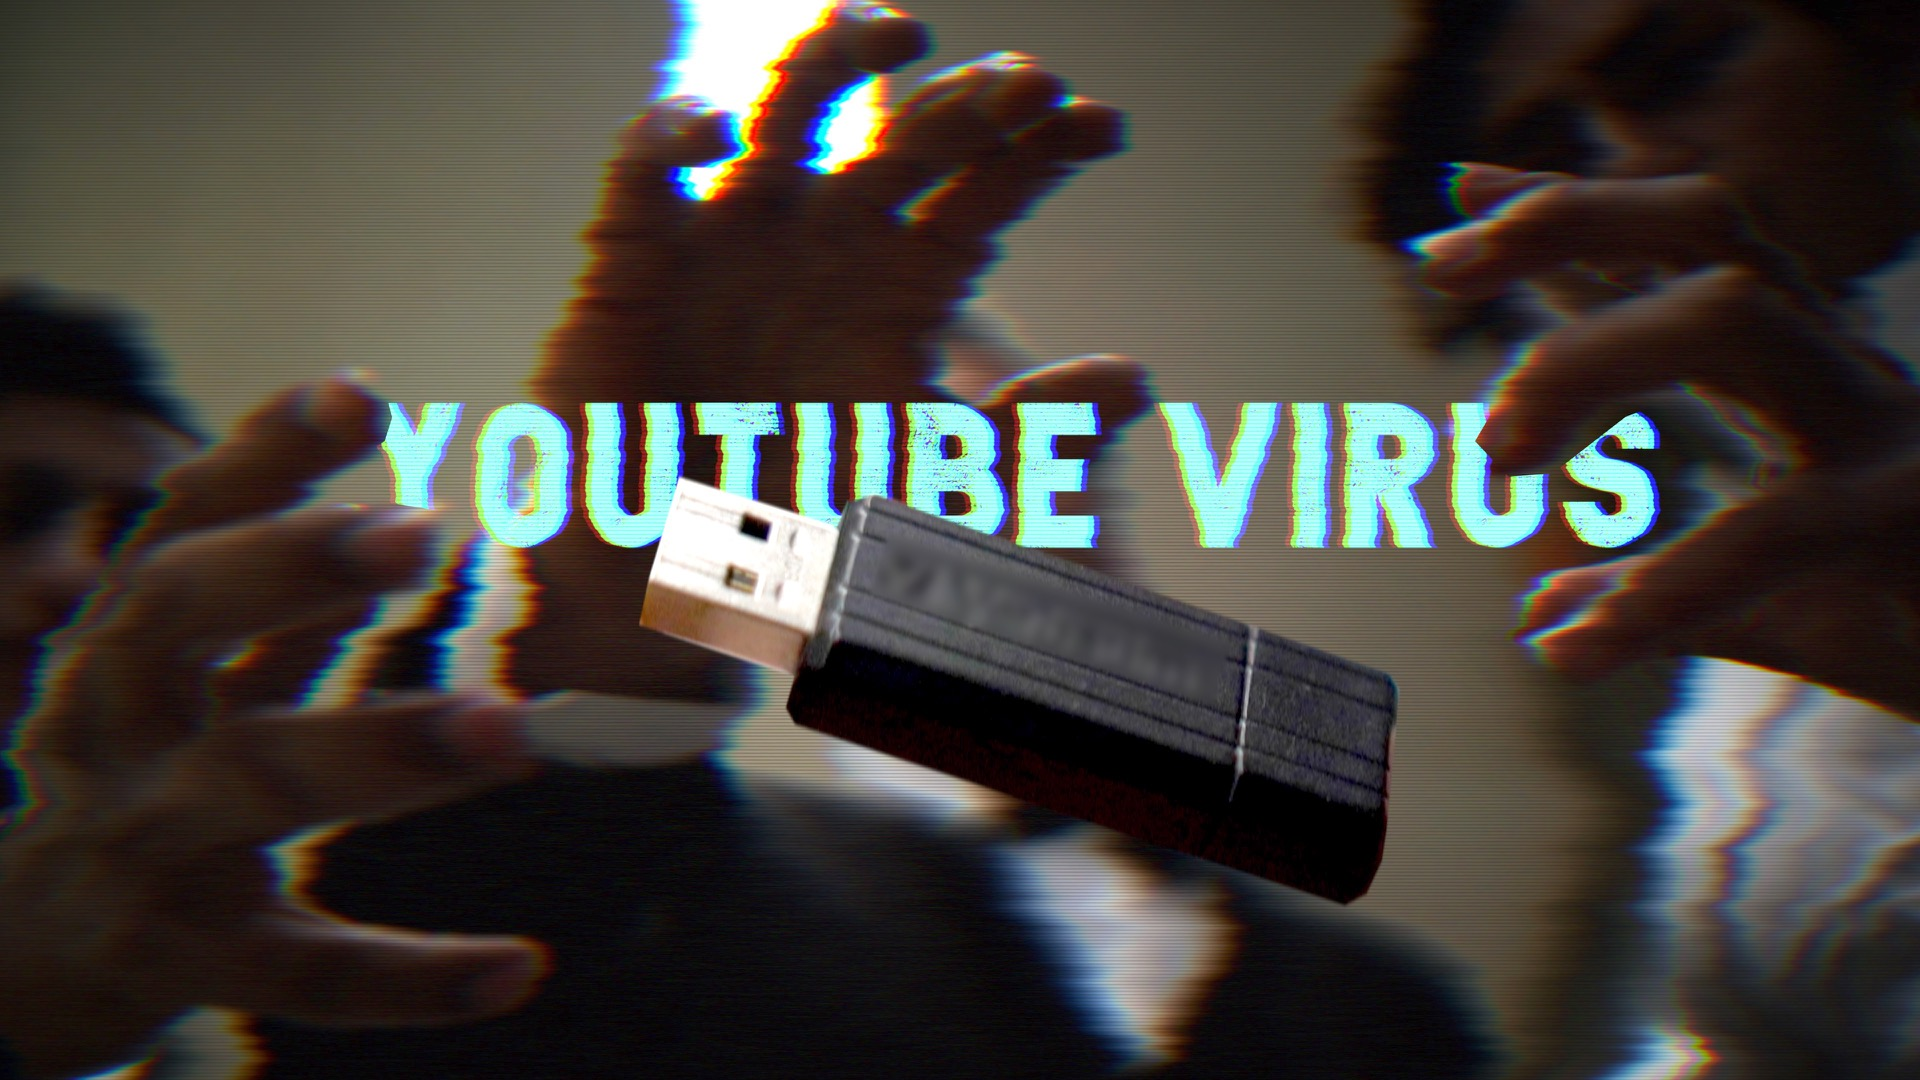 Youtube Virus